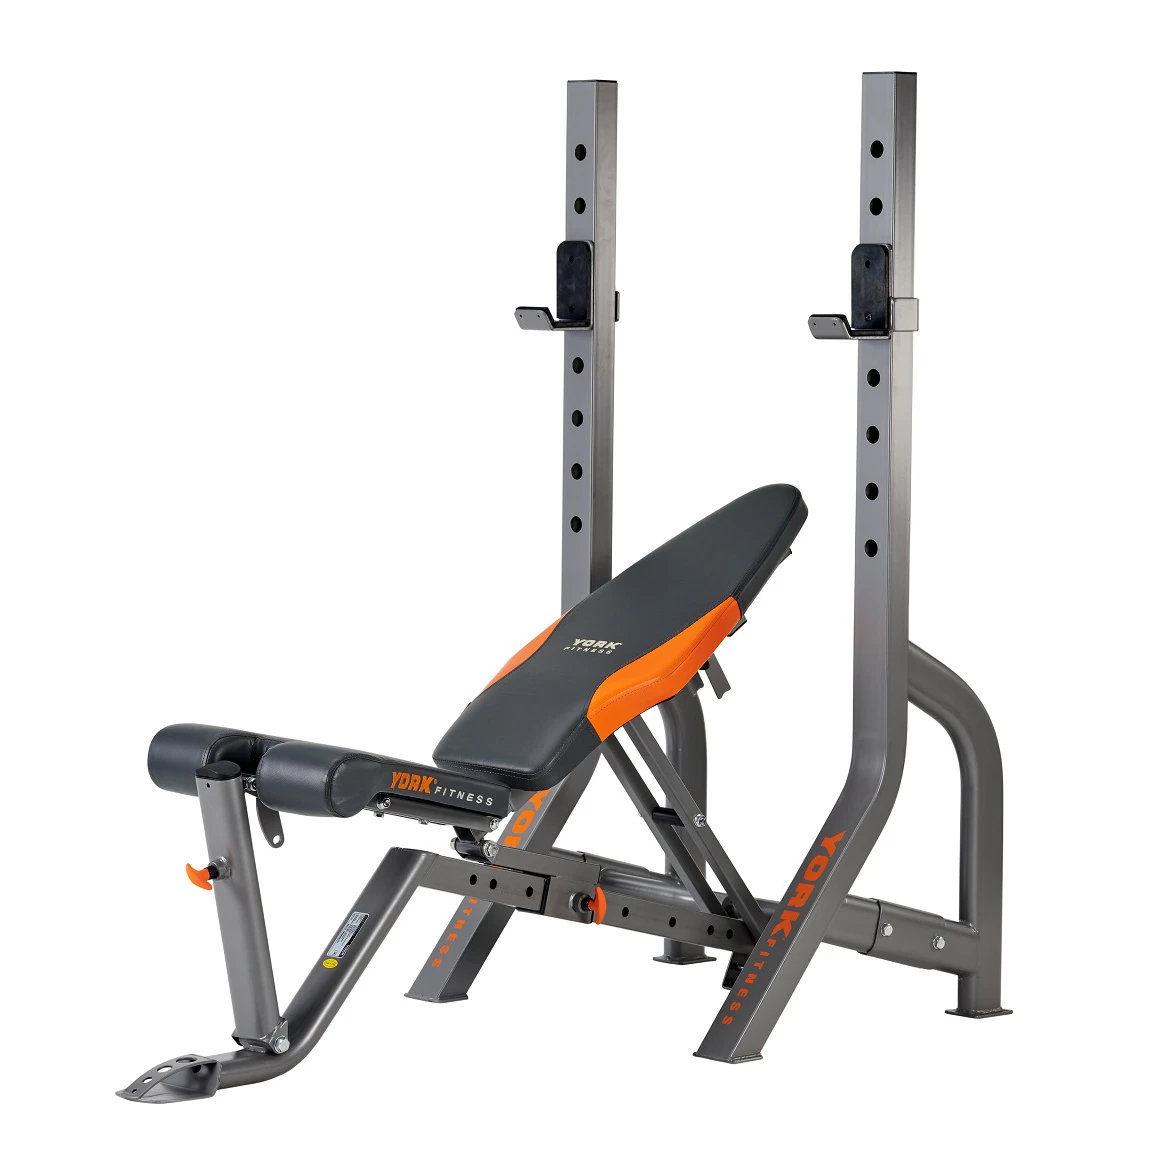 York Diamond Olympic Narrow Stance Barbell Bench